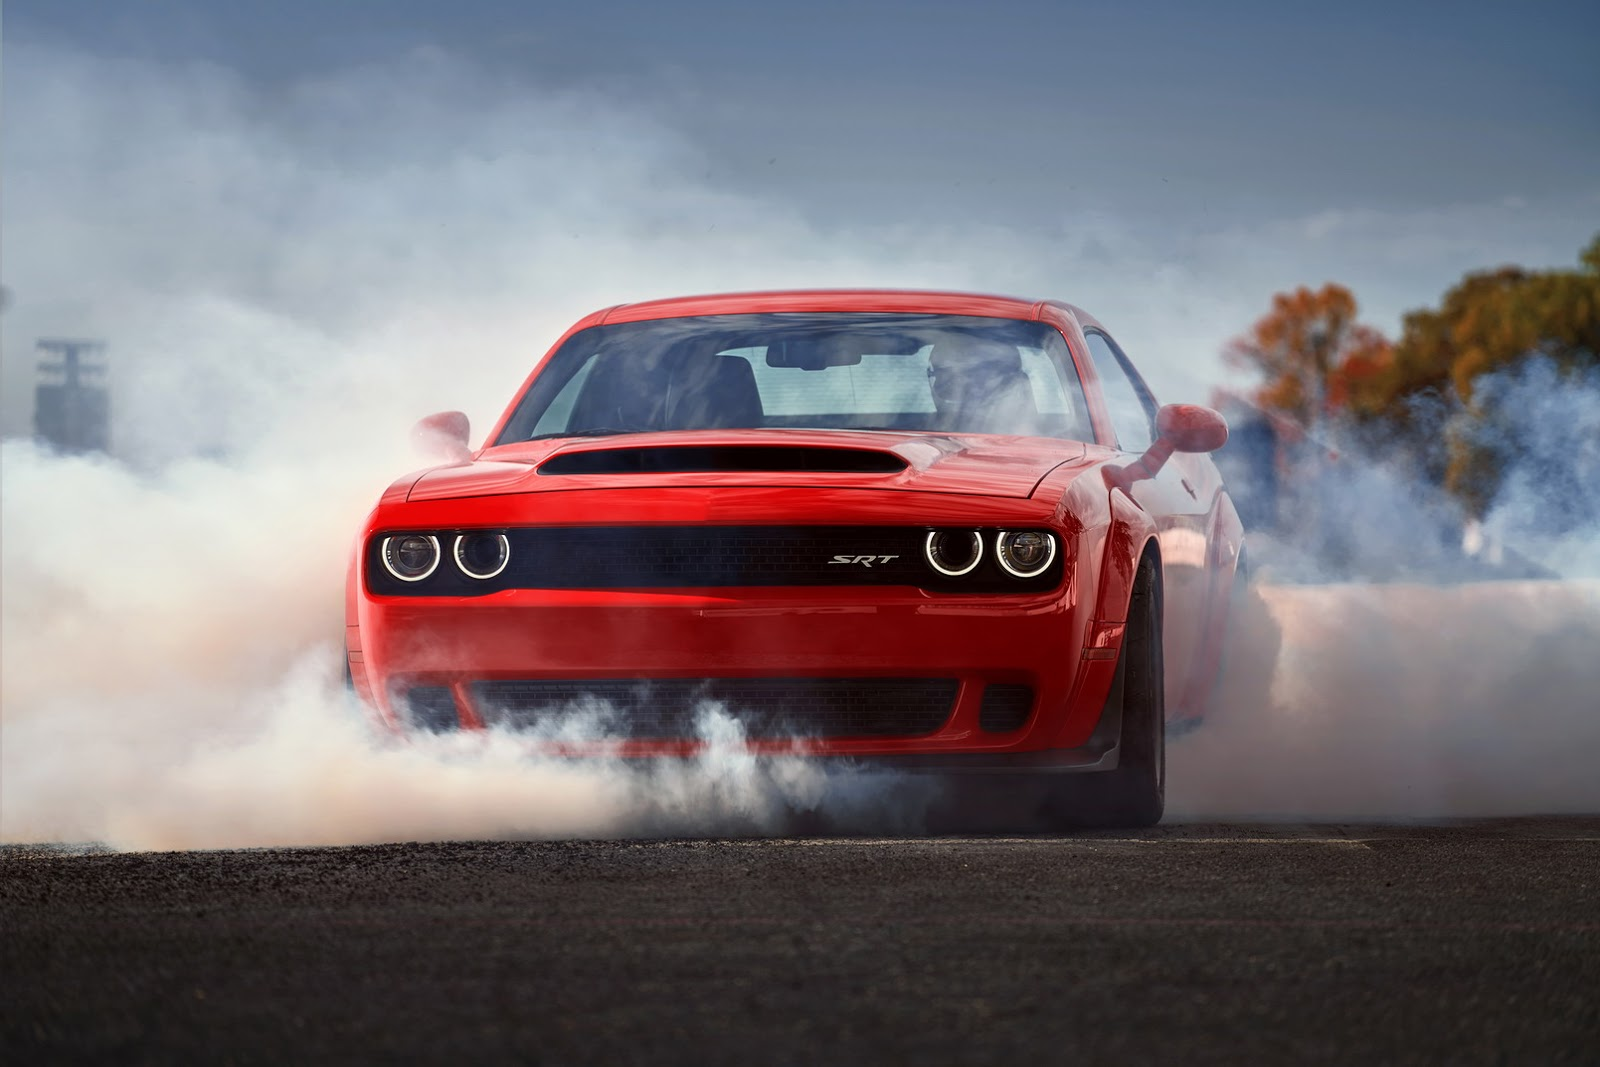 2018 Dodge Demon Goes Official As The World S Fastest 1 4 Mile